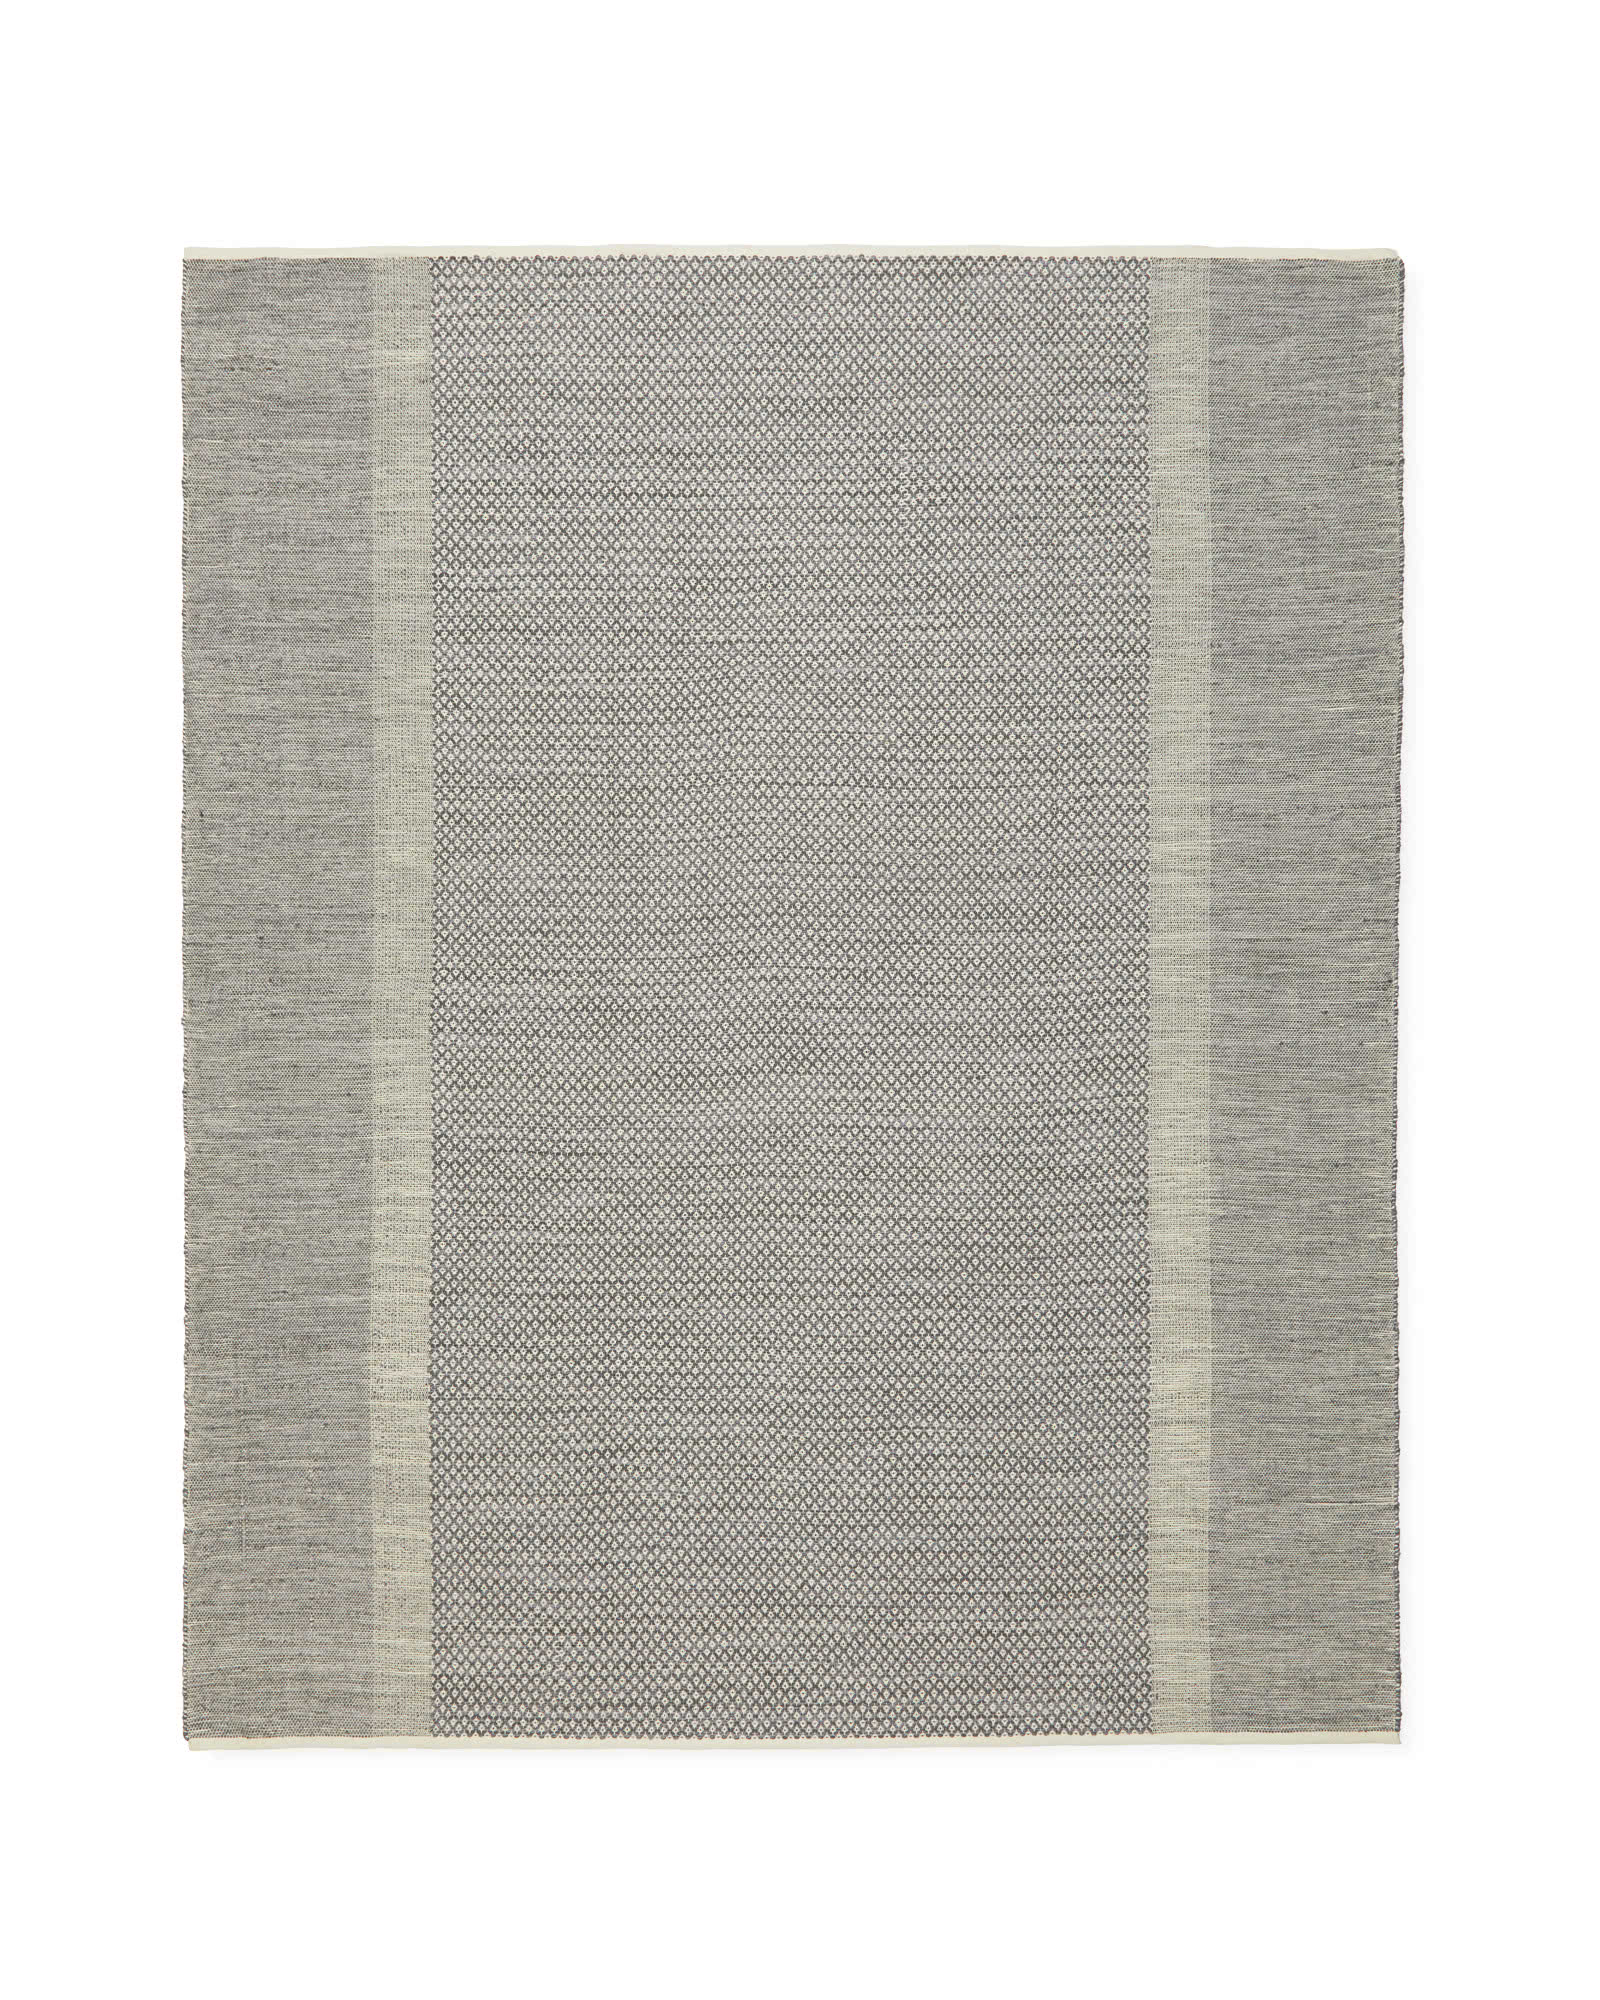 Galiano Rug, Fog